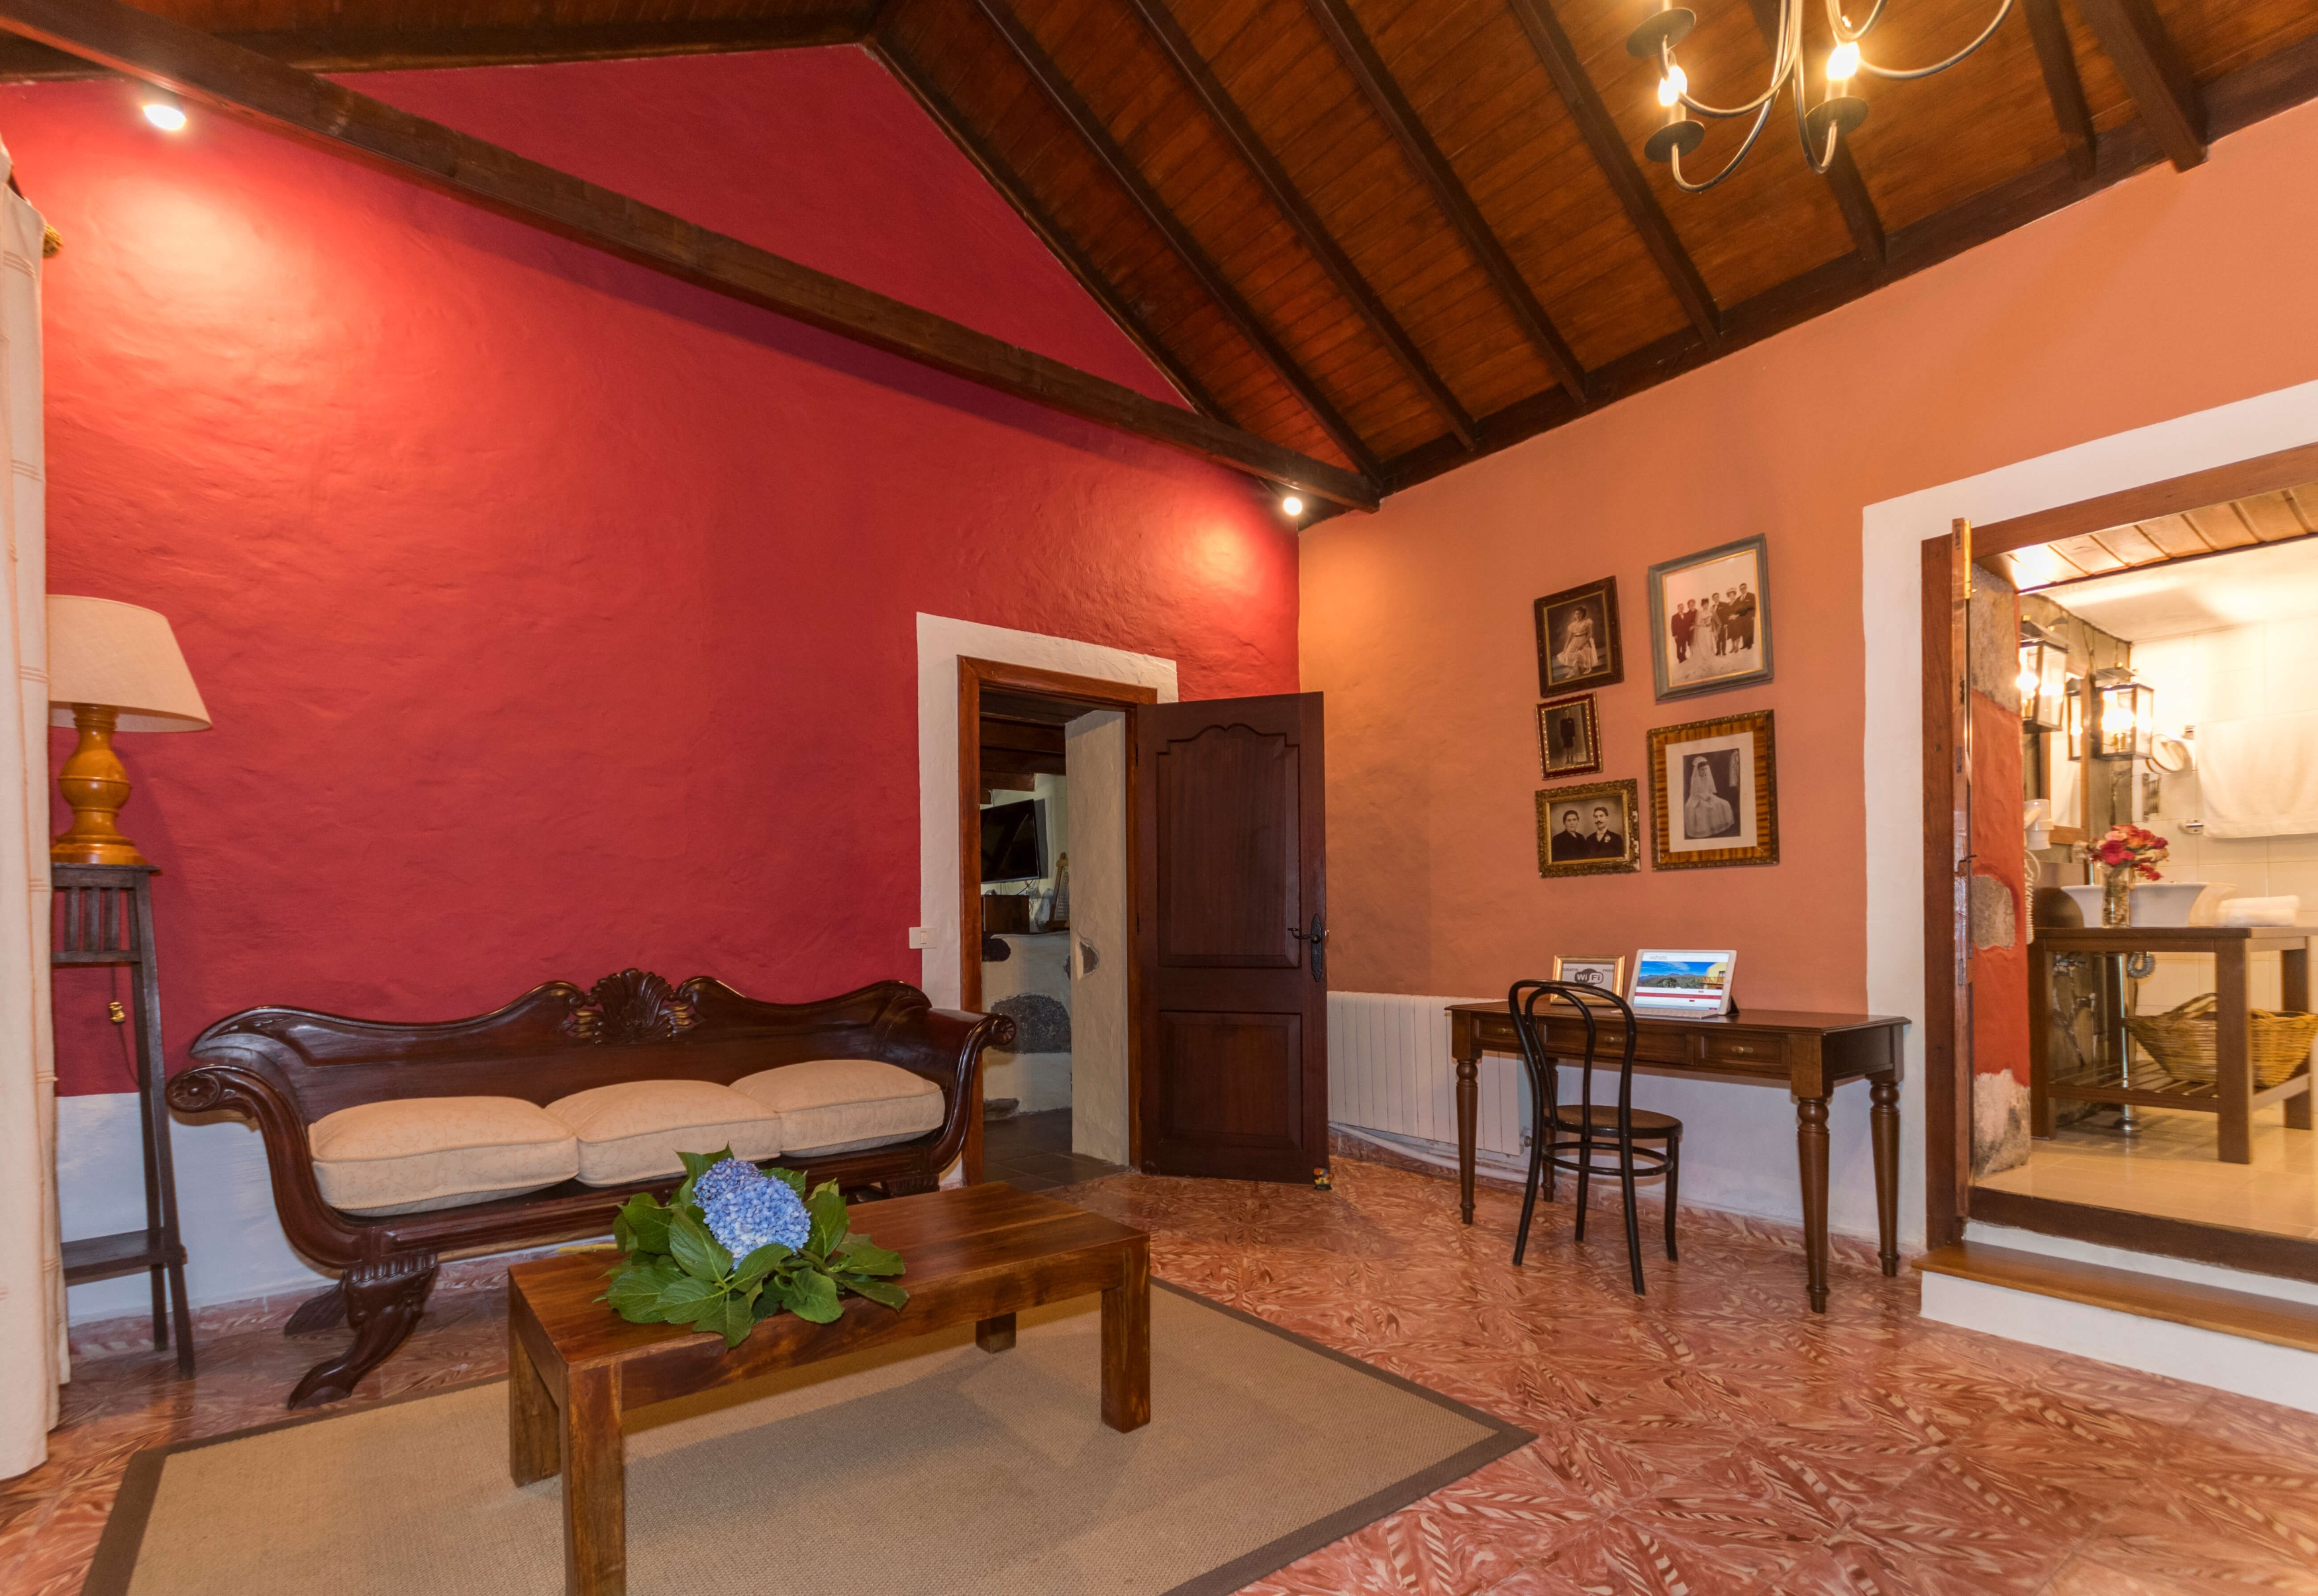 Maison de vacances House - 2 Bedrooms with Pool and WiFi - 106781 (2742990), San Fernando, Grande Canarie, Iles Canaries, Espagne, image 9